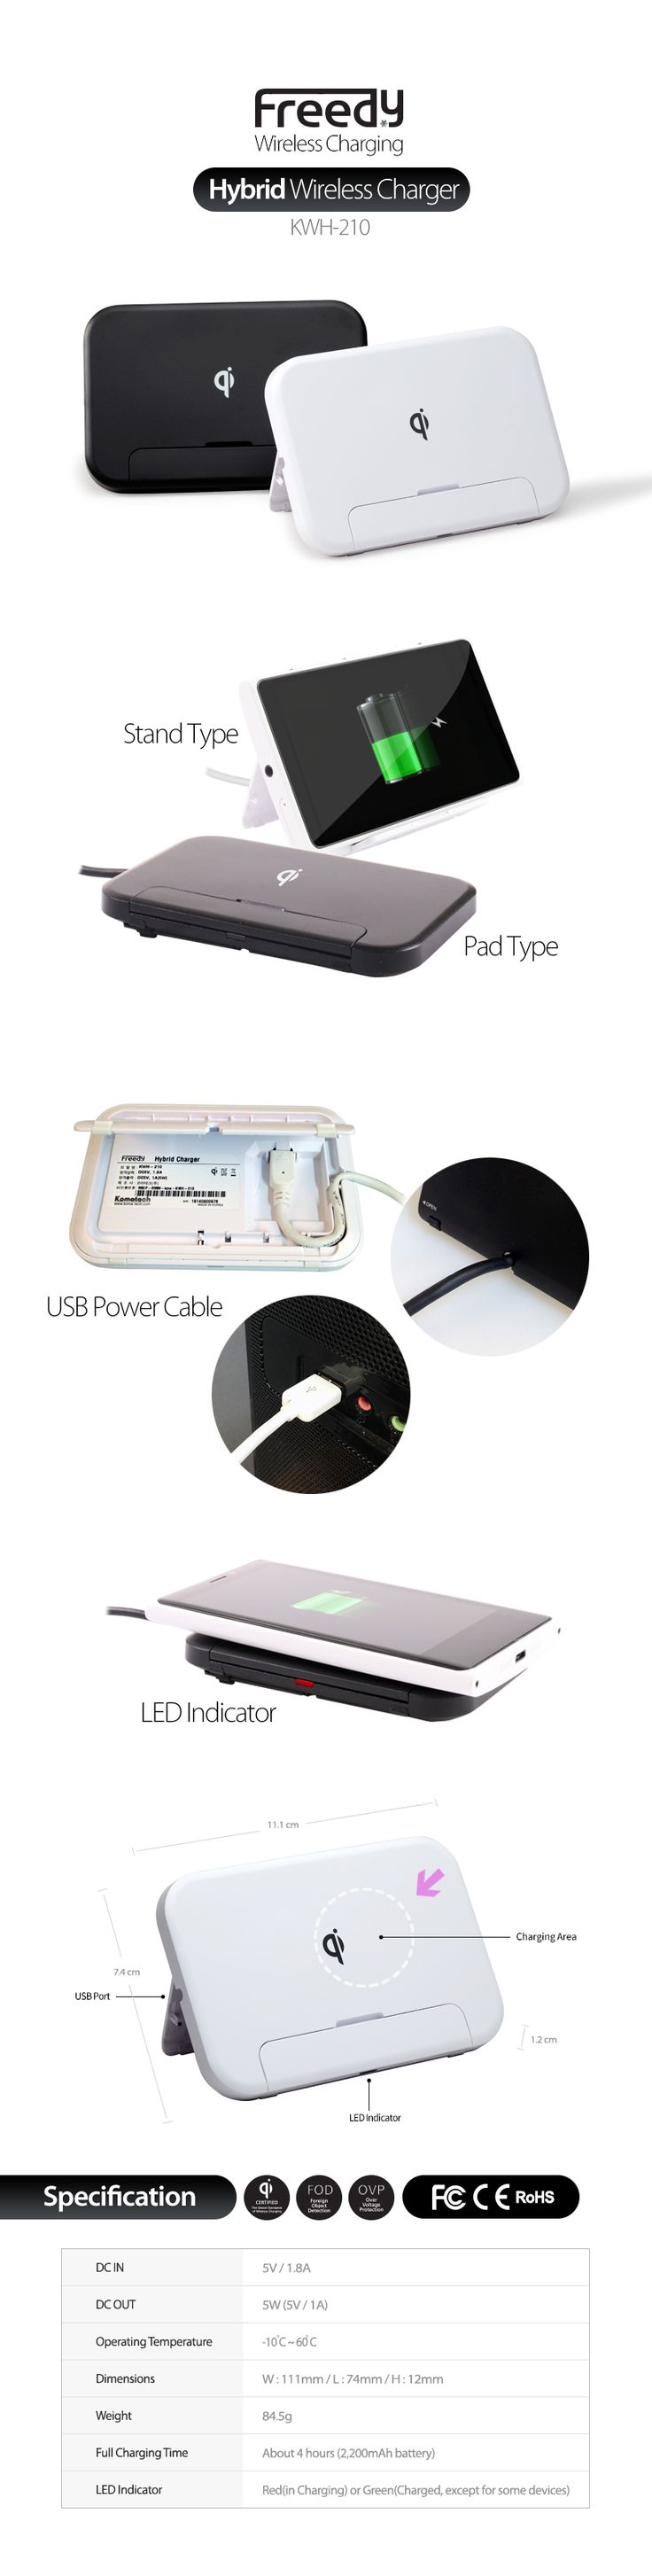 freedy hybrid wireless charger KWH-210 #wirelesscharger #wirelesscharging #freedywireless #madeinkorea